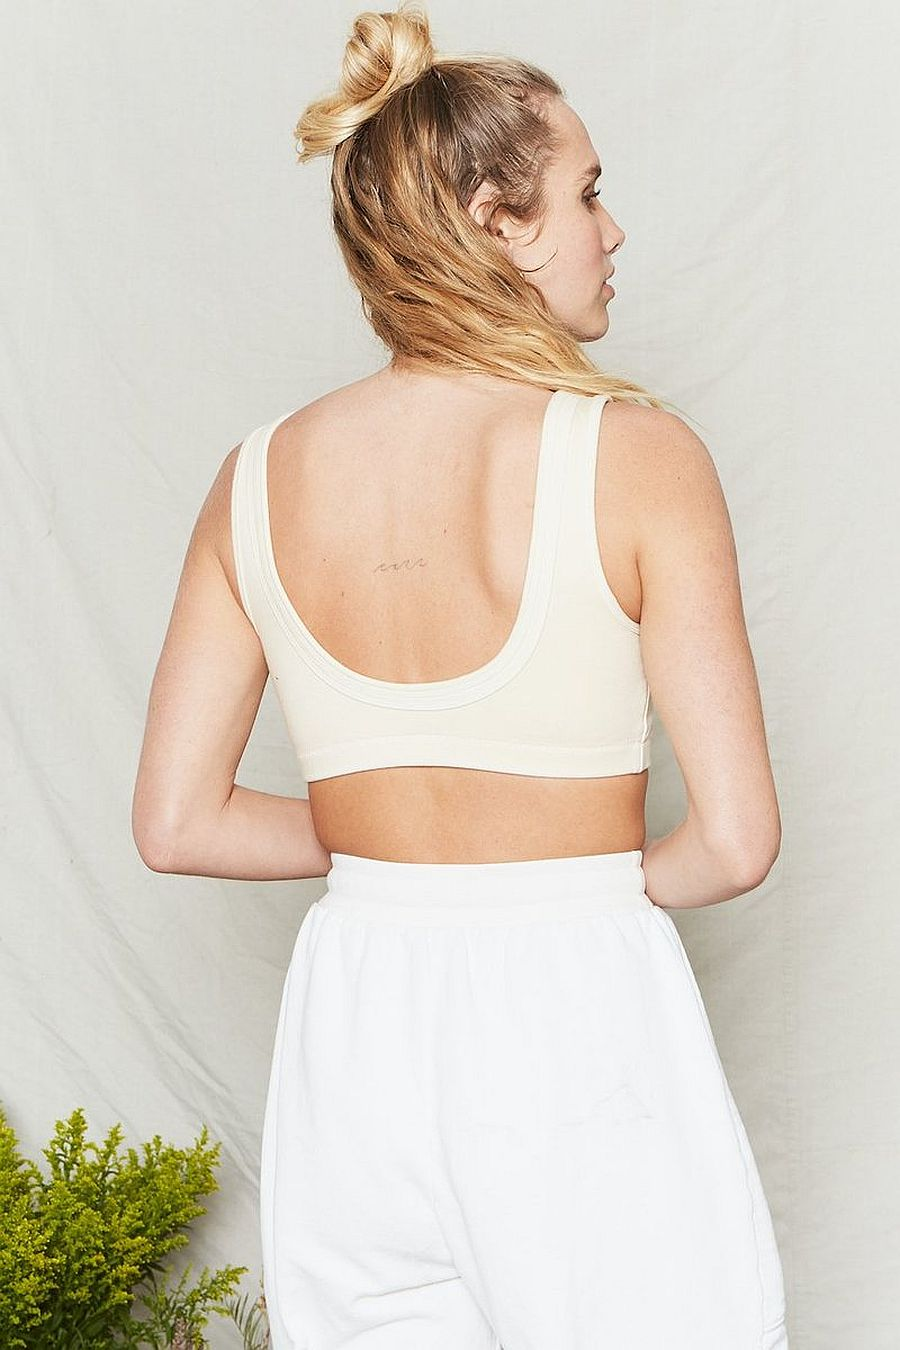 Back Beat Co. Organic Cotton Double Band Bra - Natural